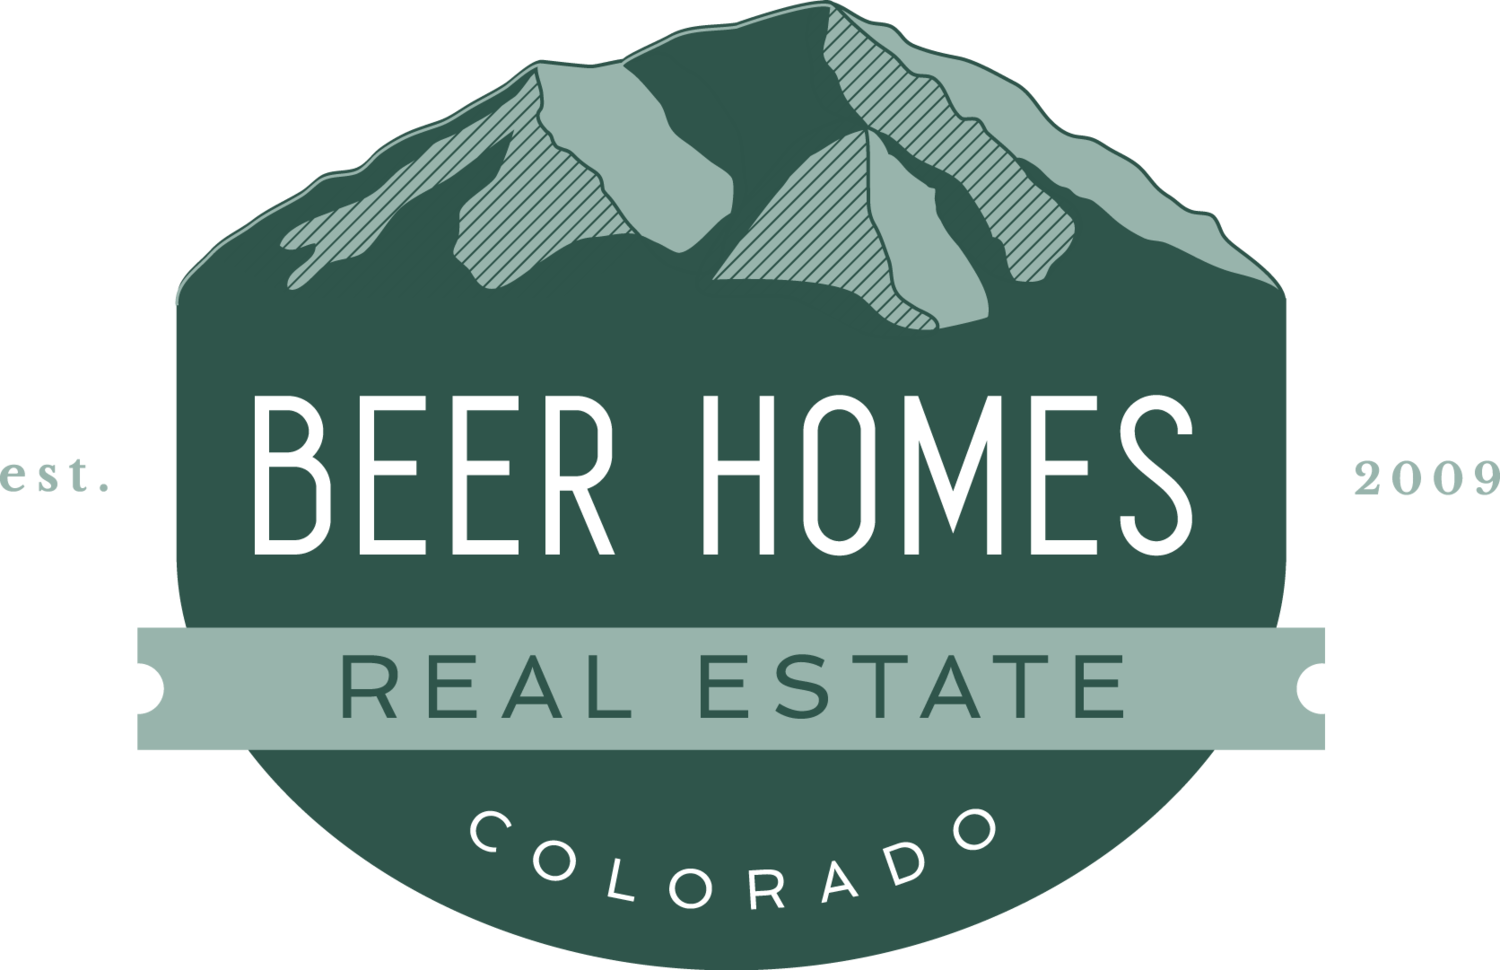 Beer Homes Real Estate